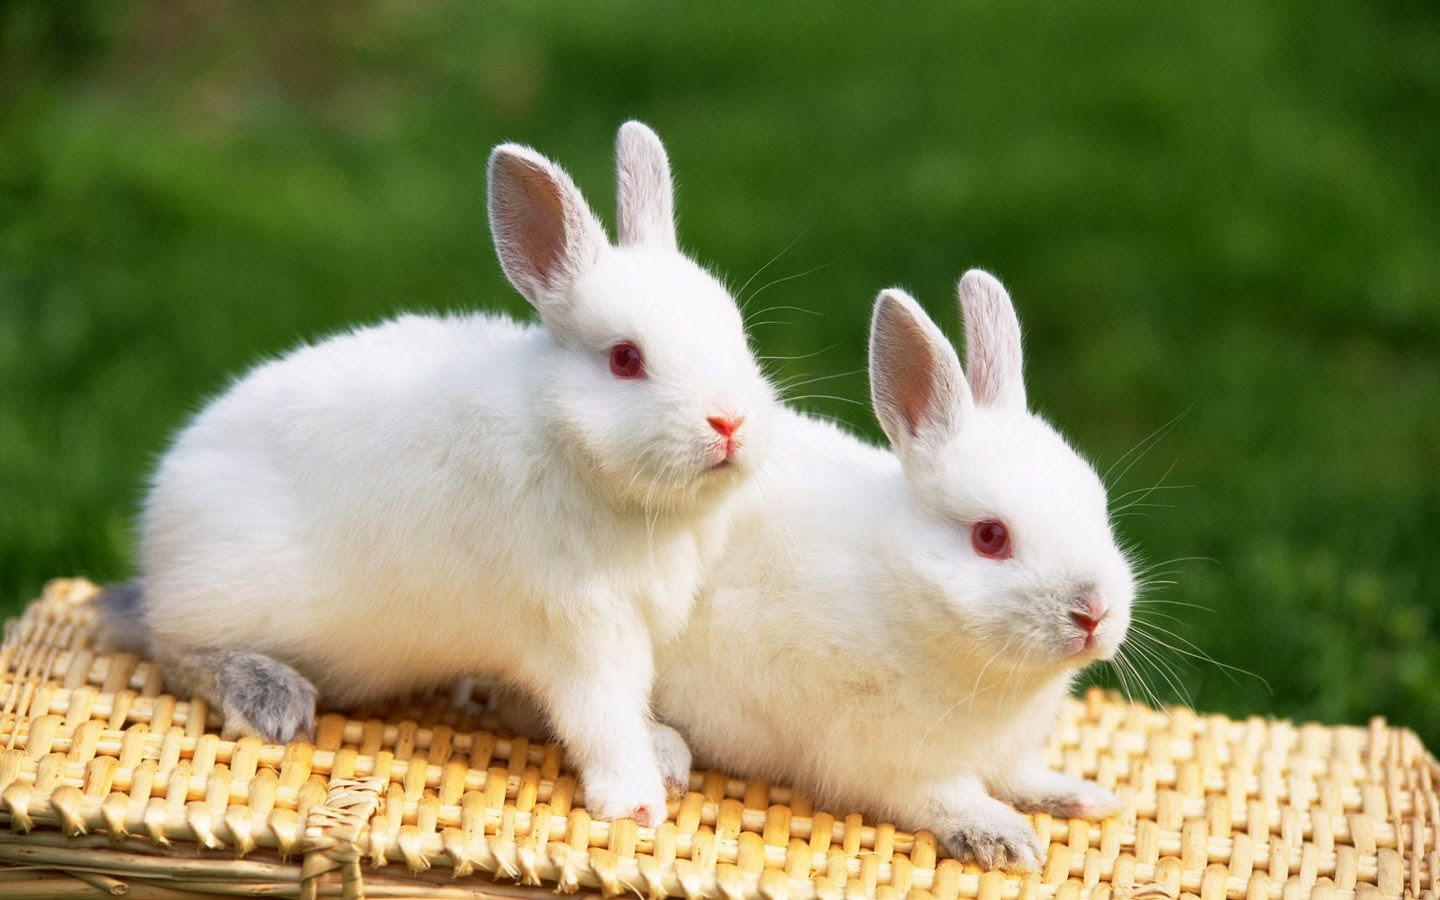 Rabbit hd funny wallpapers funny wallpapers rabbit hd funny wallpapers voltagebd Choice Image